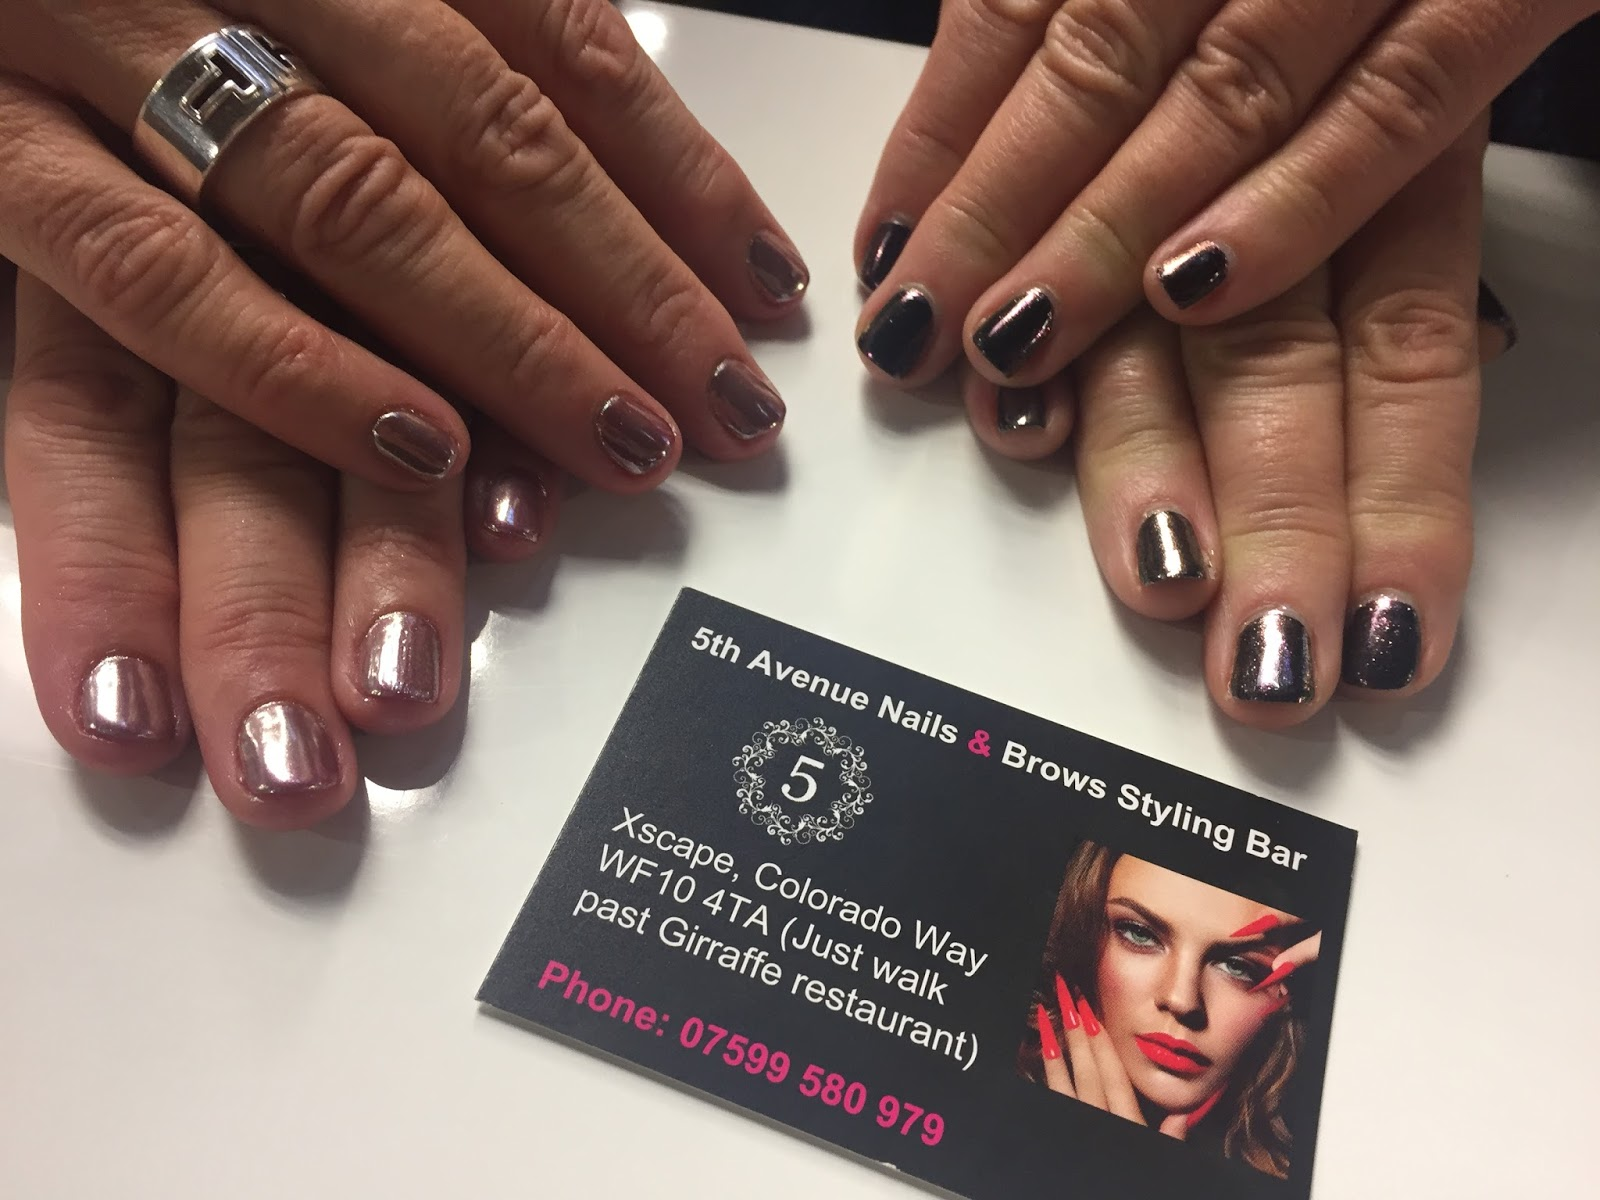 Xscape and 5th Avenue Nails & Brows   Eccentric England - nominated ...